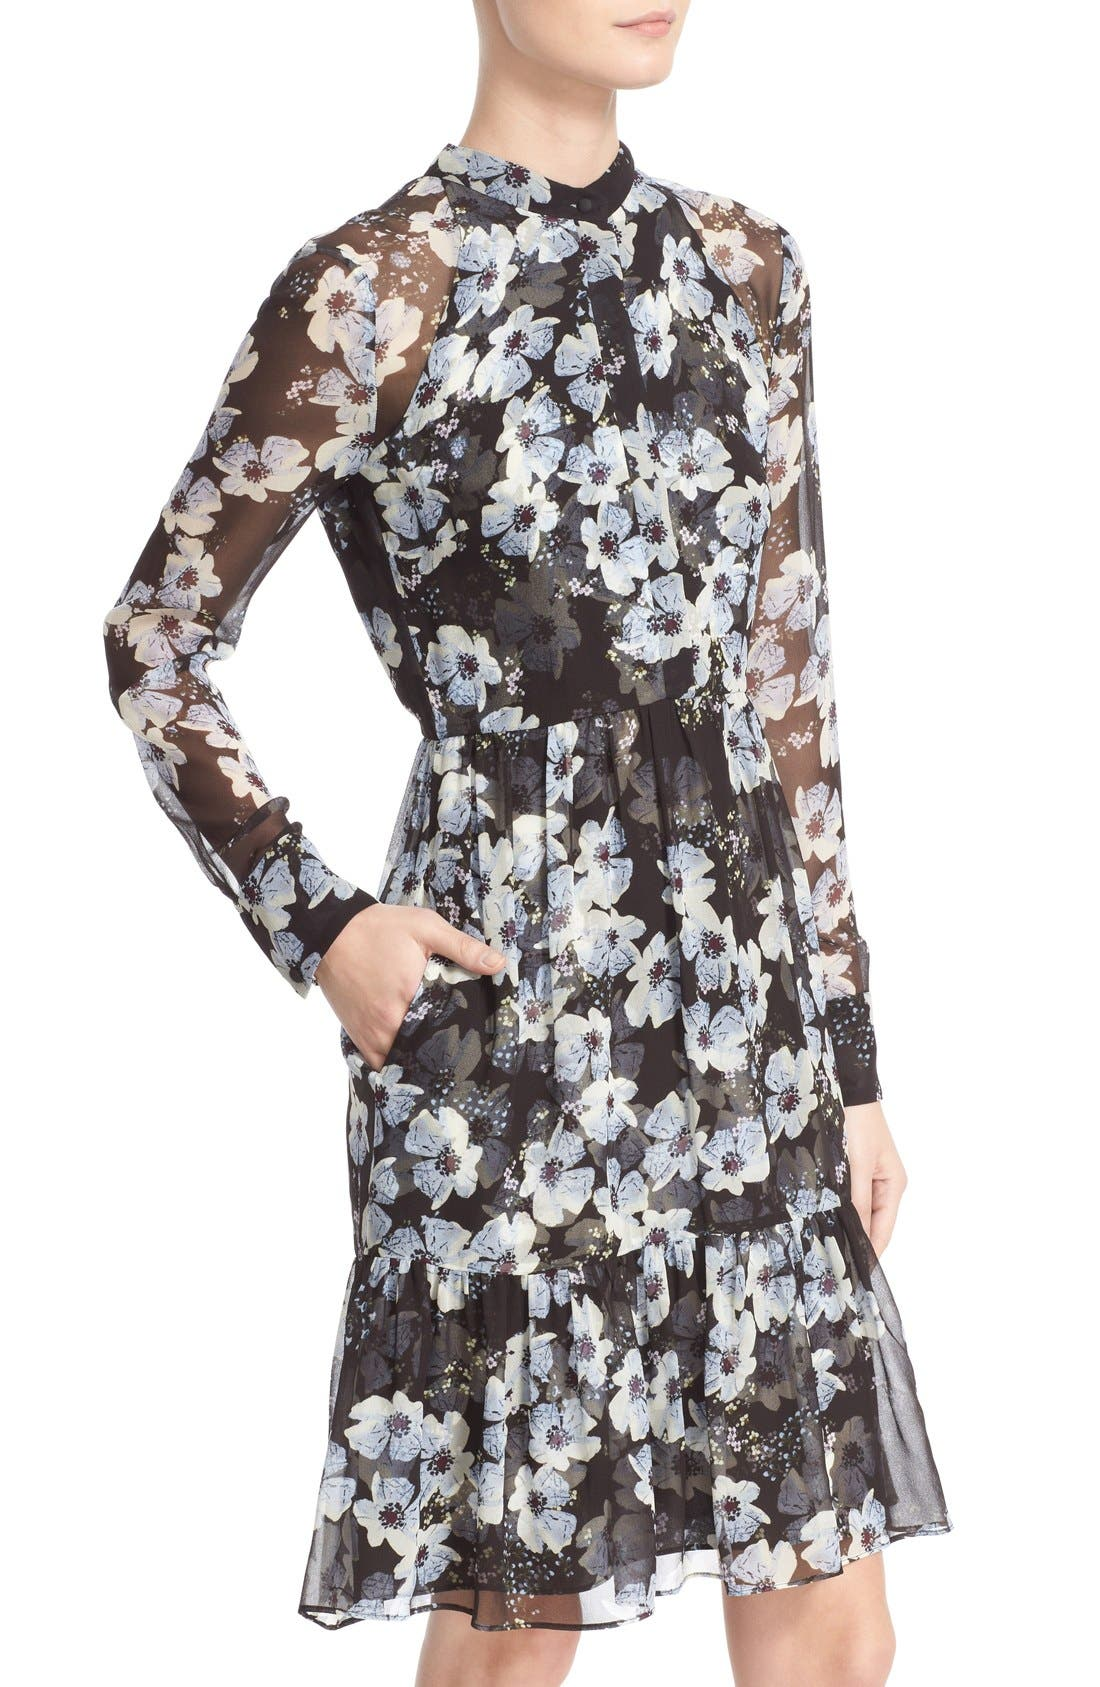 'Devika' Floral Print Silk Voile Dress,                             Alternate thumbnail 6, color,                             003